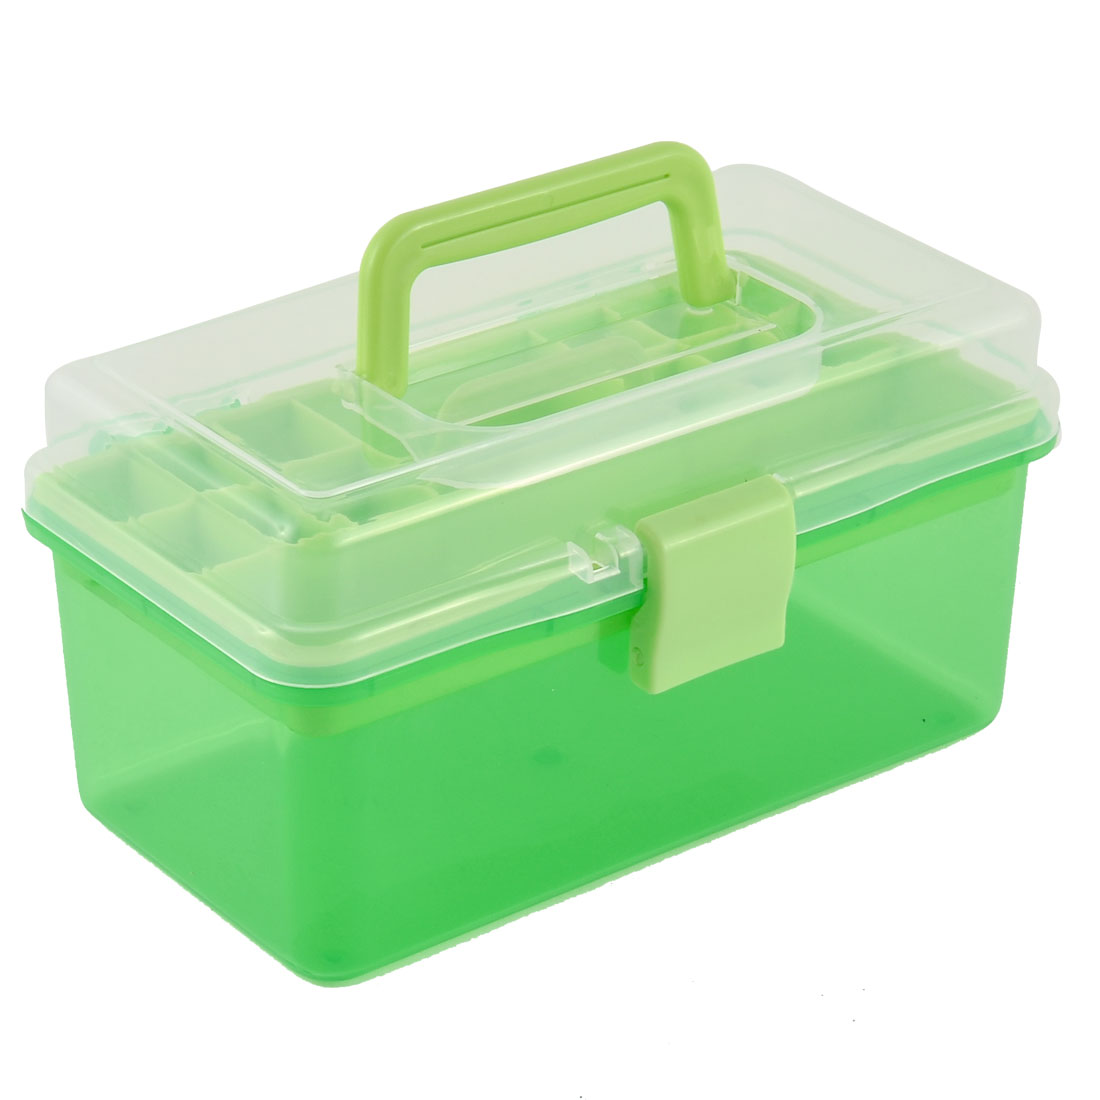 15 Compartments Dual Layers Cosmetics Sundries Organizer Storage Box Green